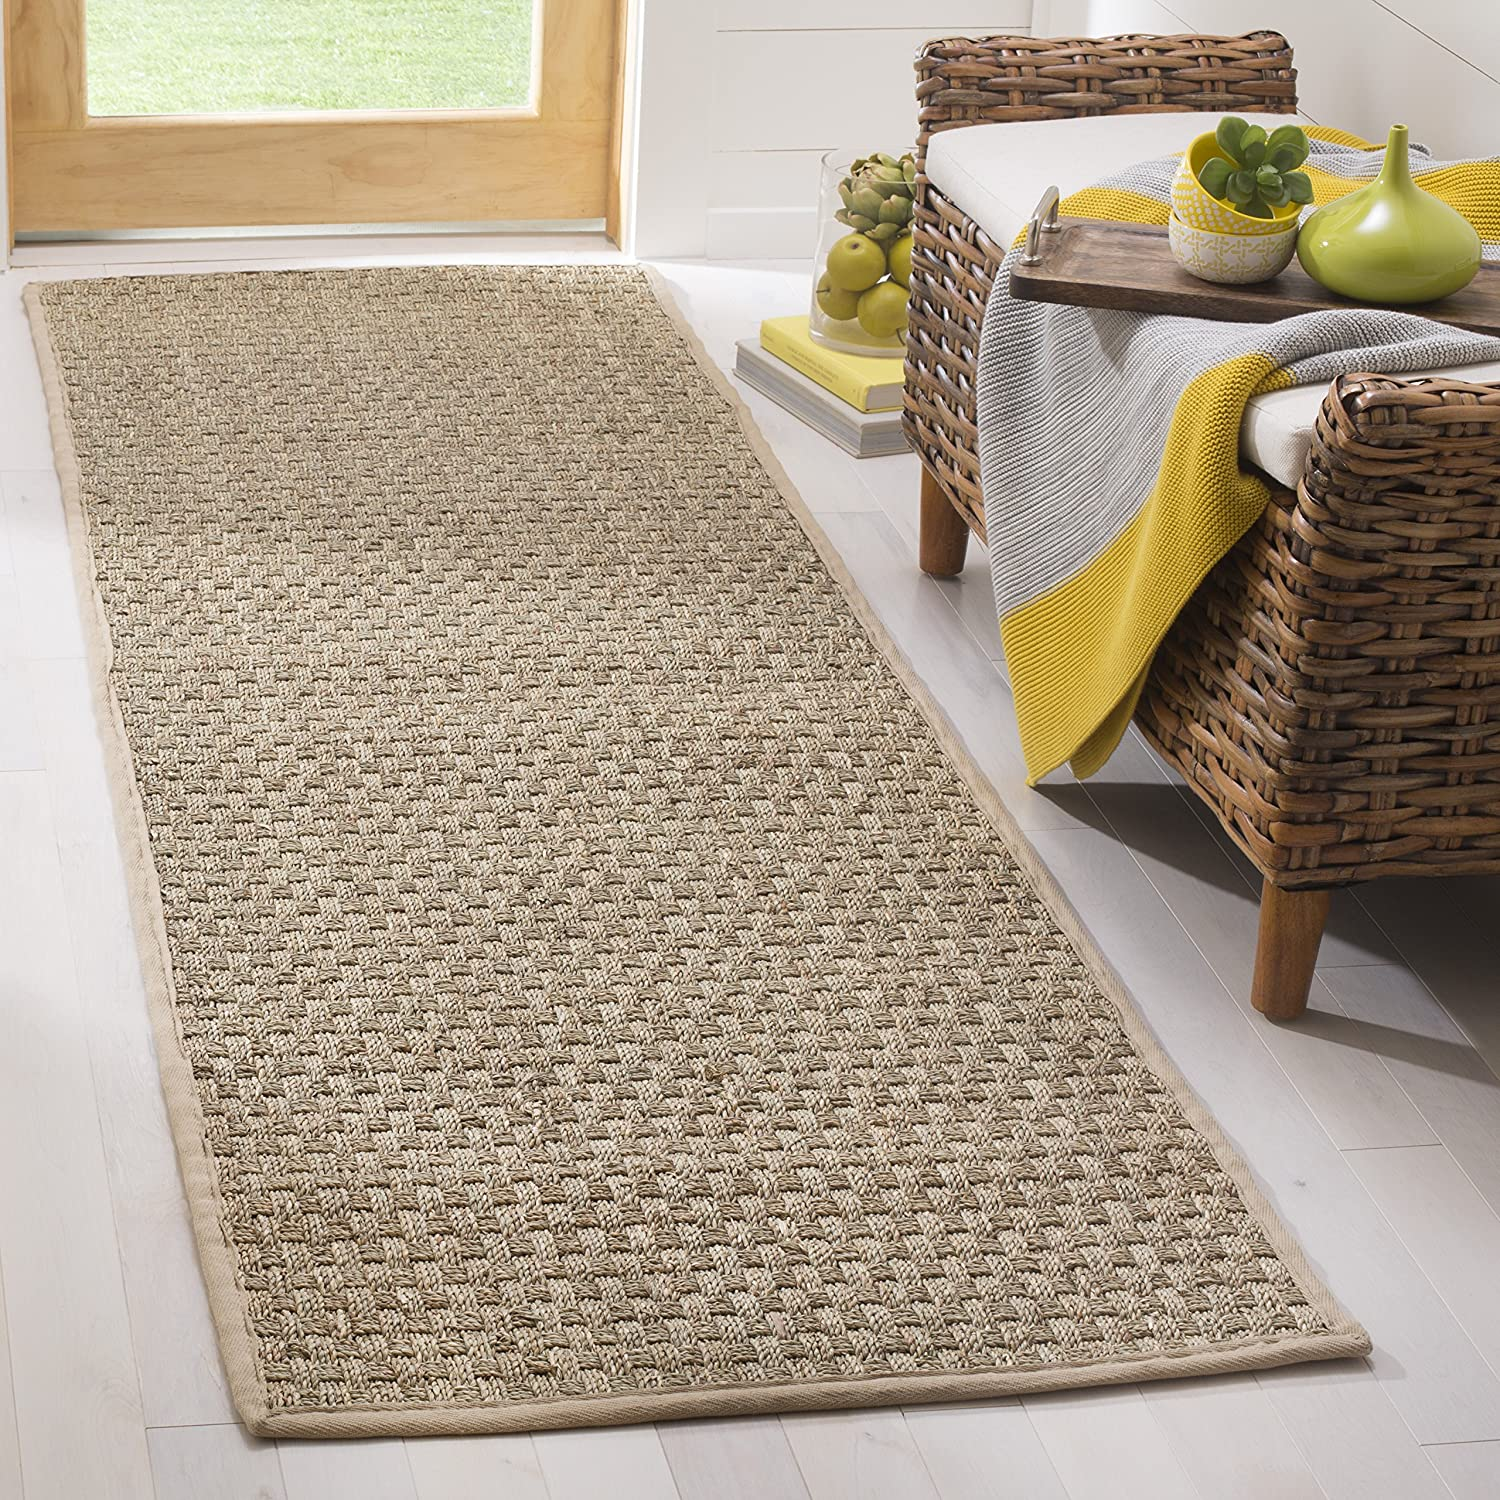 Safavieh NF182A-210 Area Rug 23 x 10 Natural//Ivory